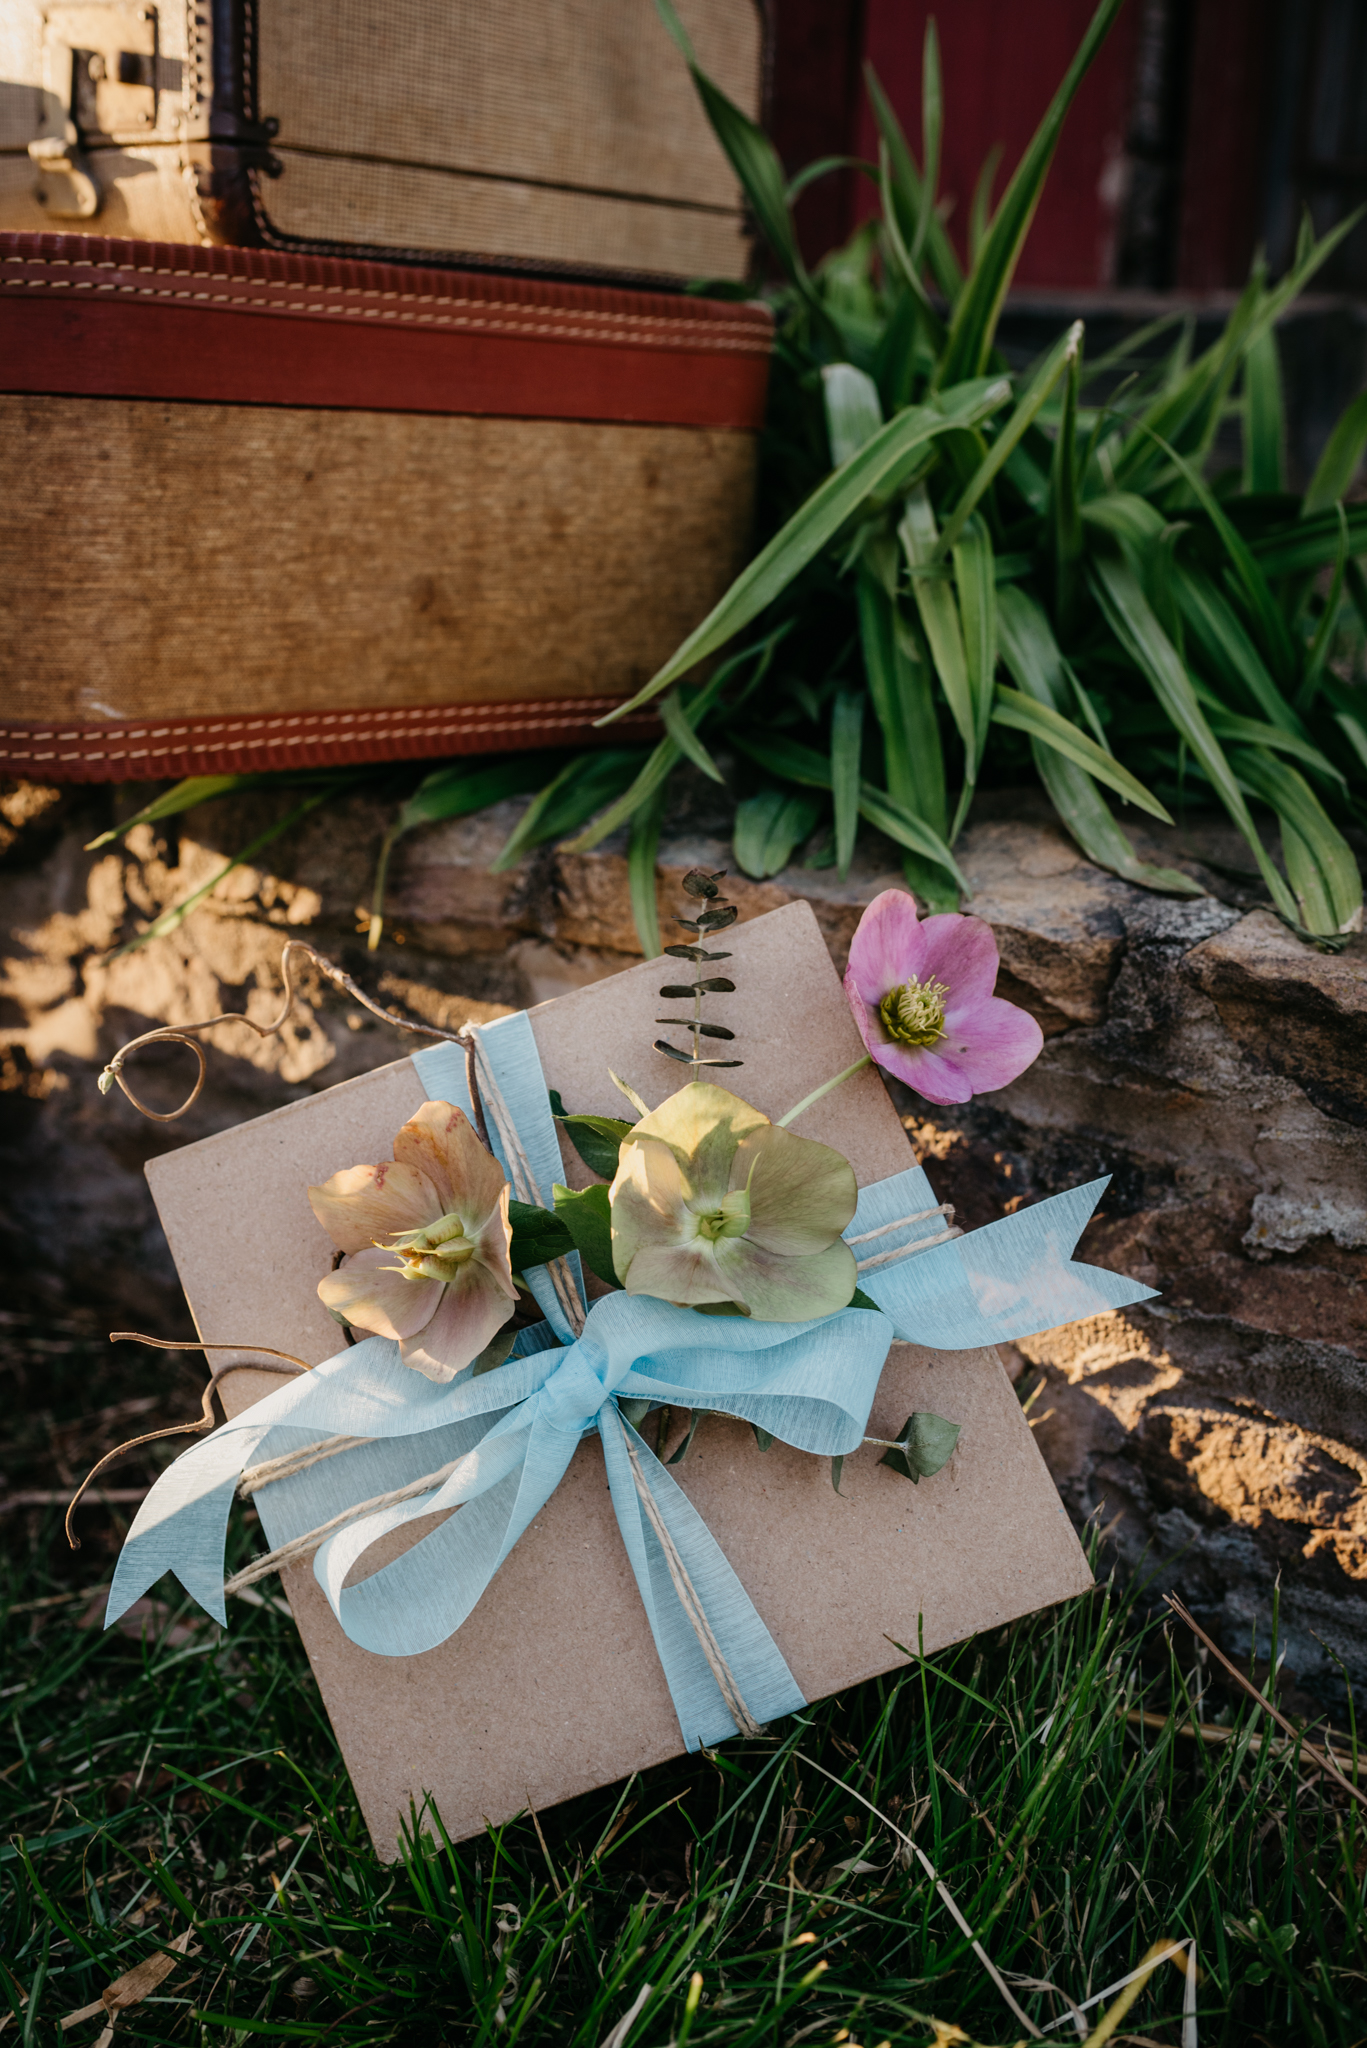 The suitcases and gifts were setup outside by the barn at the rustic styled engagement session with Rose Trail Images at Windy Hill Farm near Raleigh, NC.